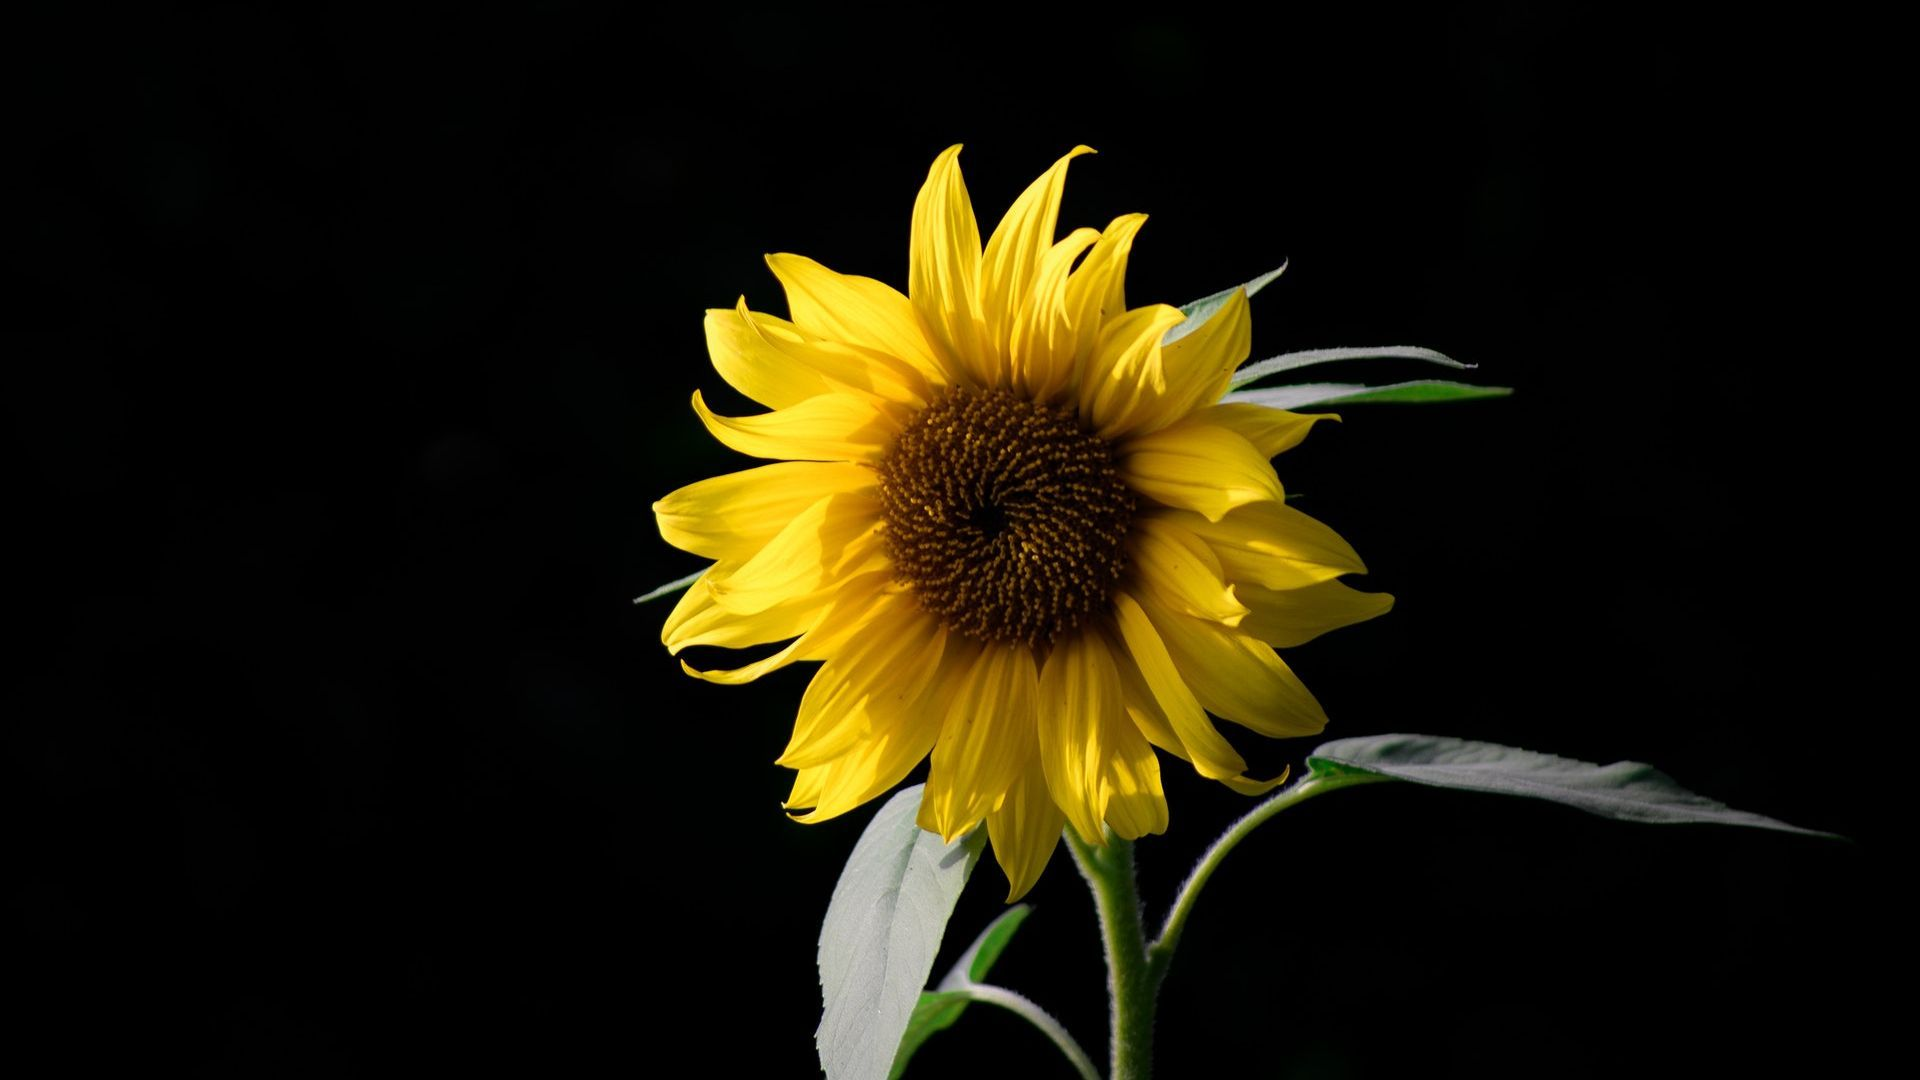 Sunflower with Black Background Wallpaper Sunflower